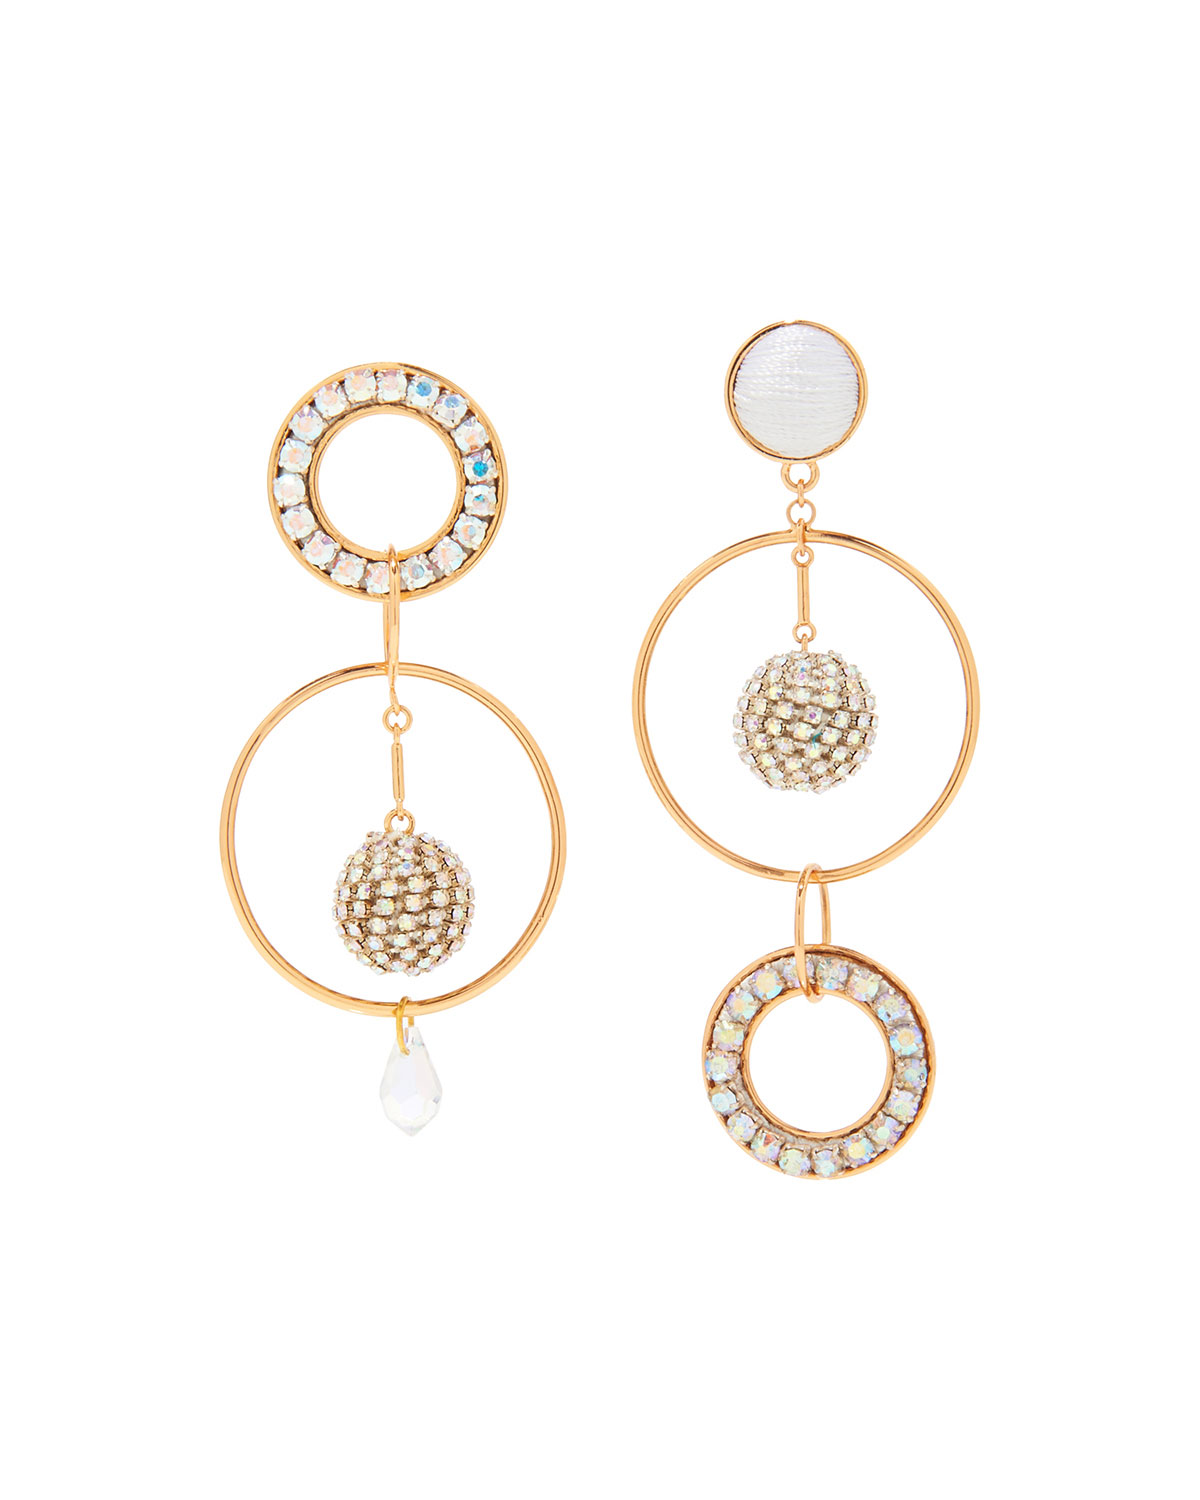 Mignonne Gavigan Accessories MIKA CRYSTAL MISMATCH EARRINGS